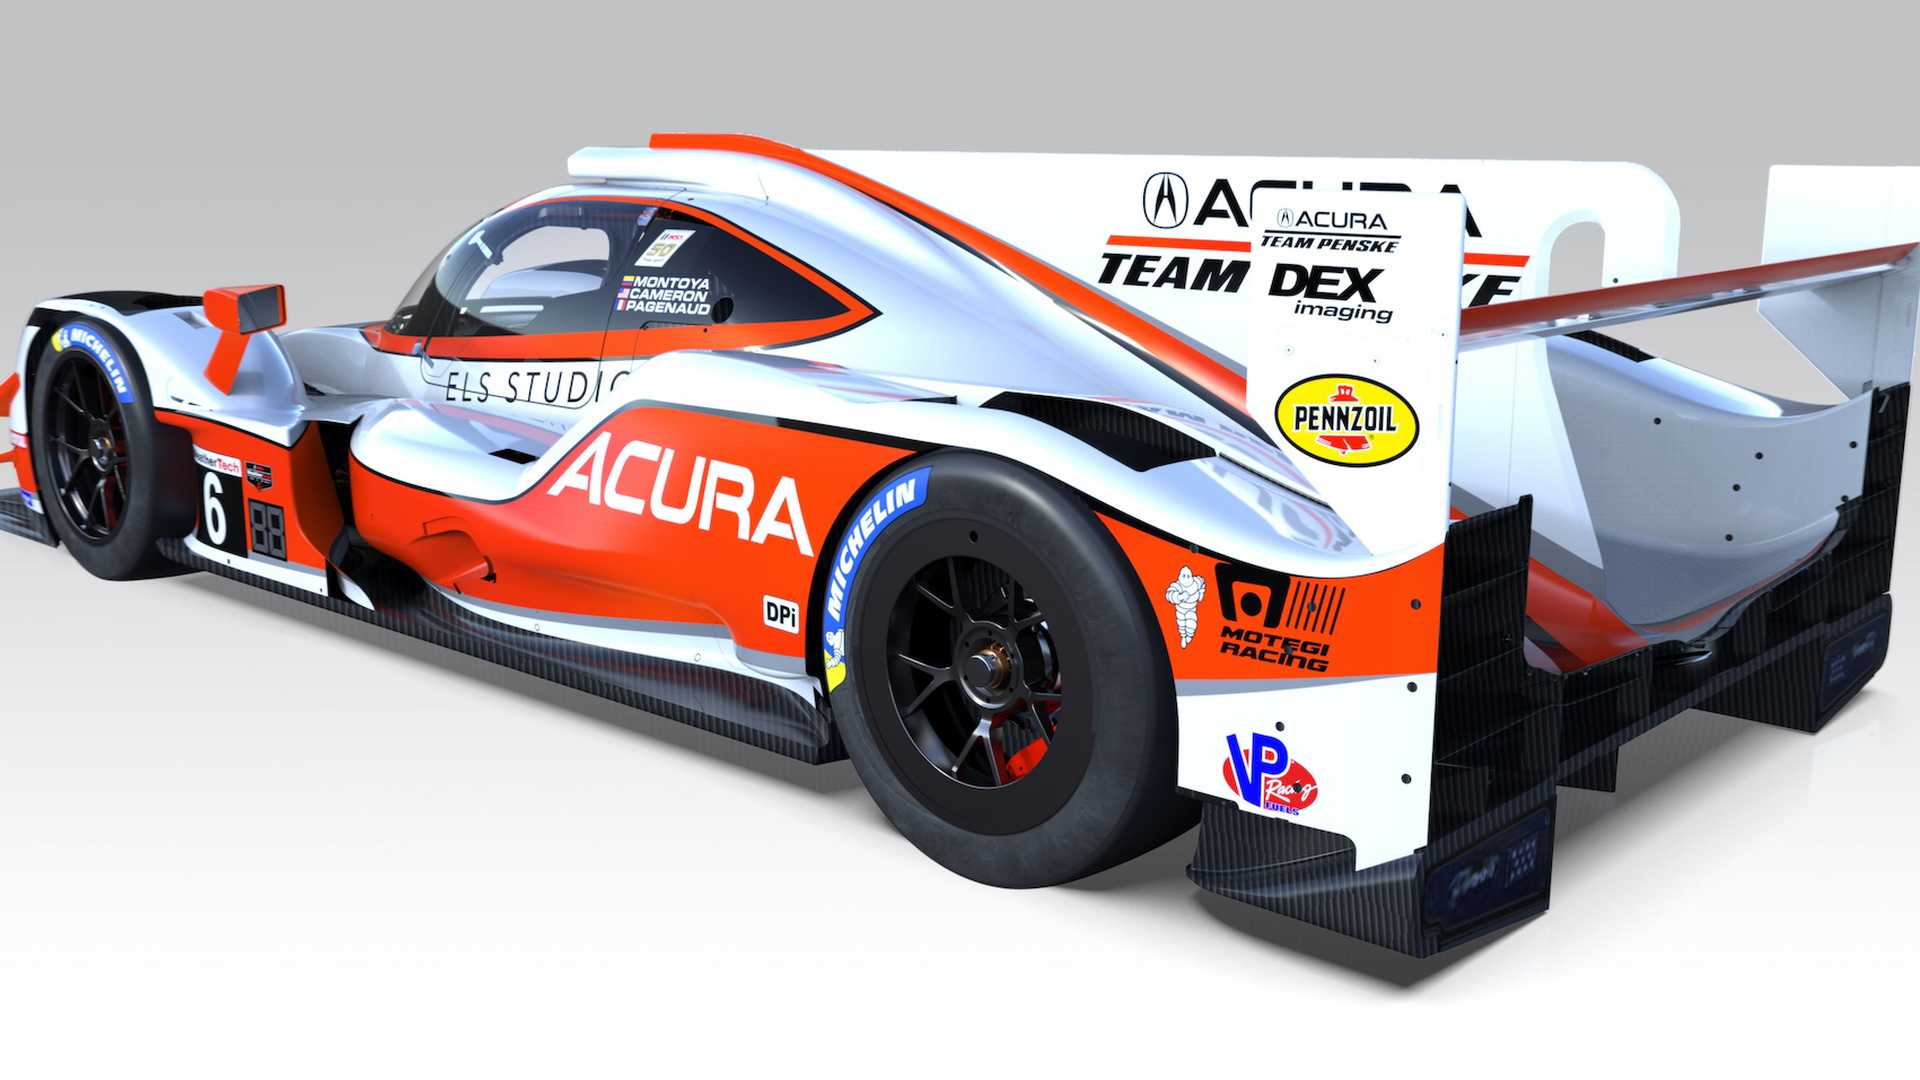 Acura ARX-05 prototype race car with heritage livery, IMSA 2019 season